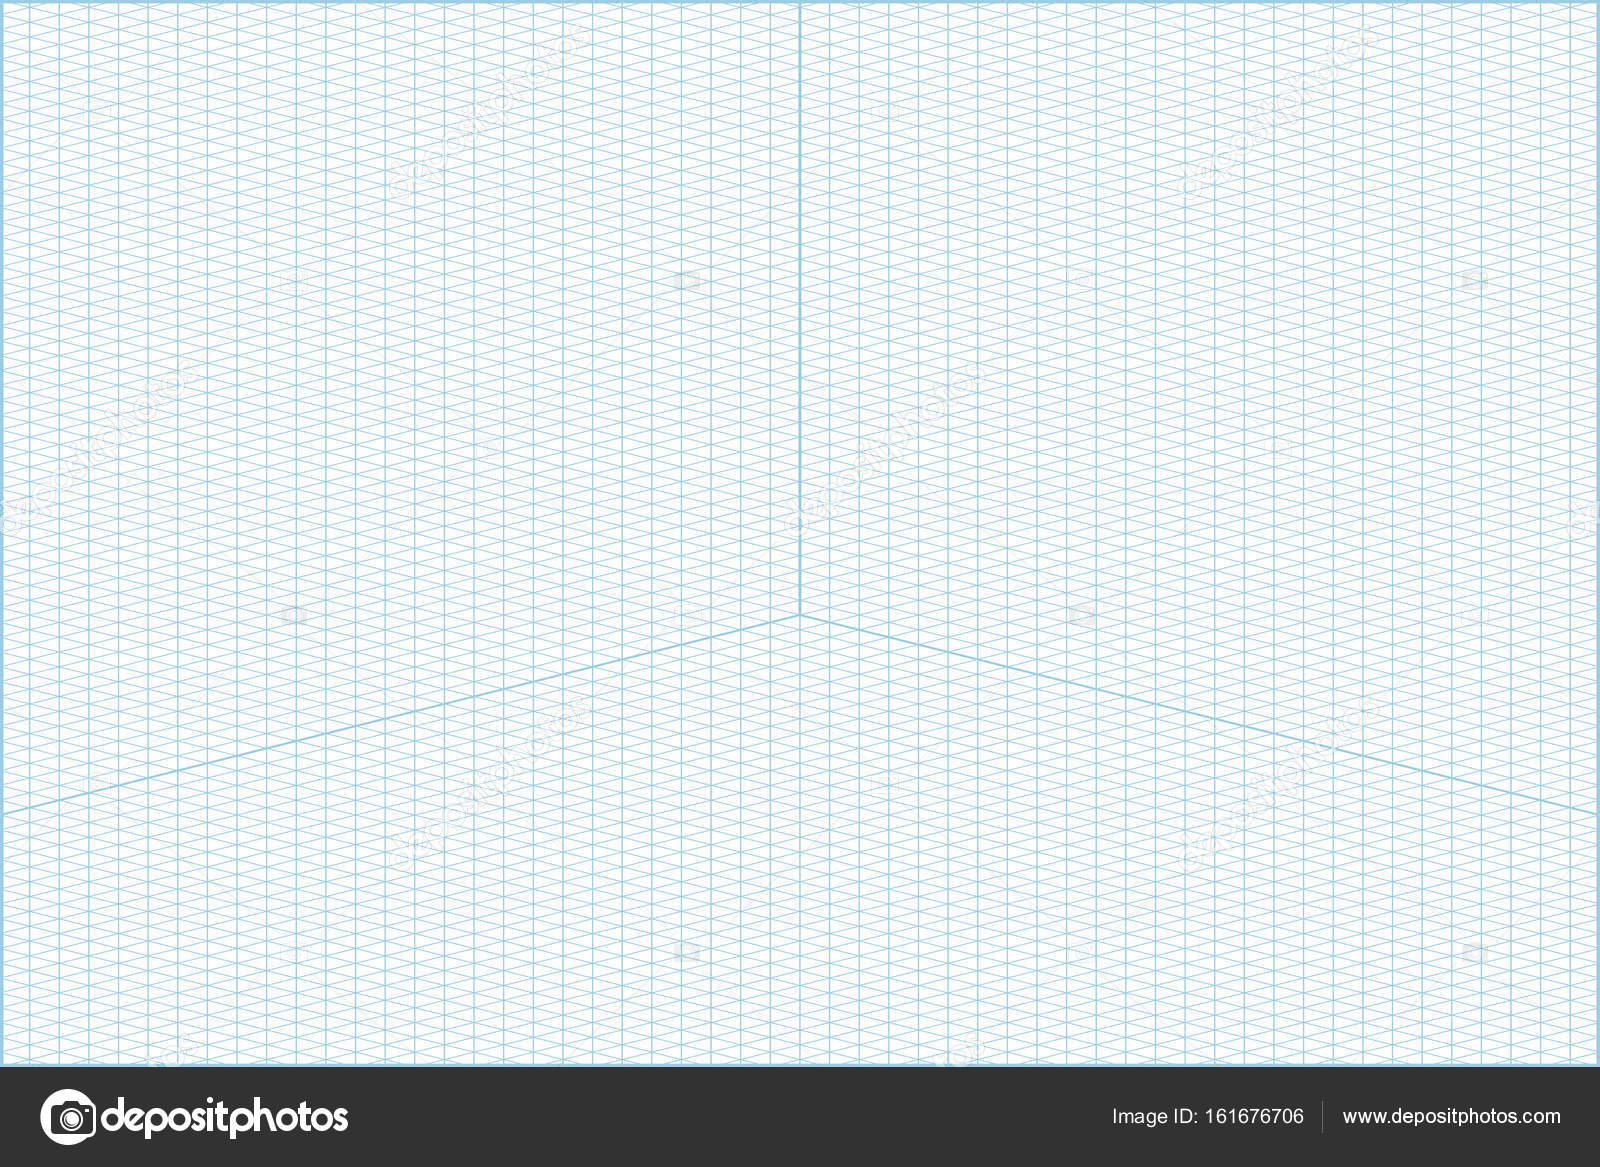 Wide angle isometric grid graph paper background \u2014 Stock Vector